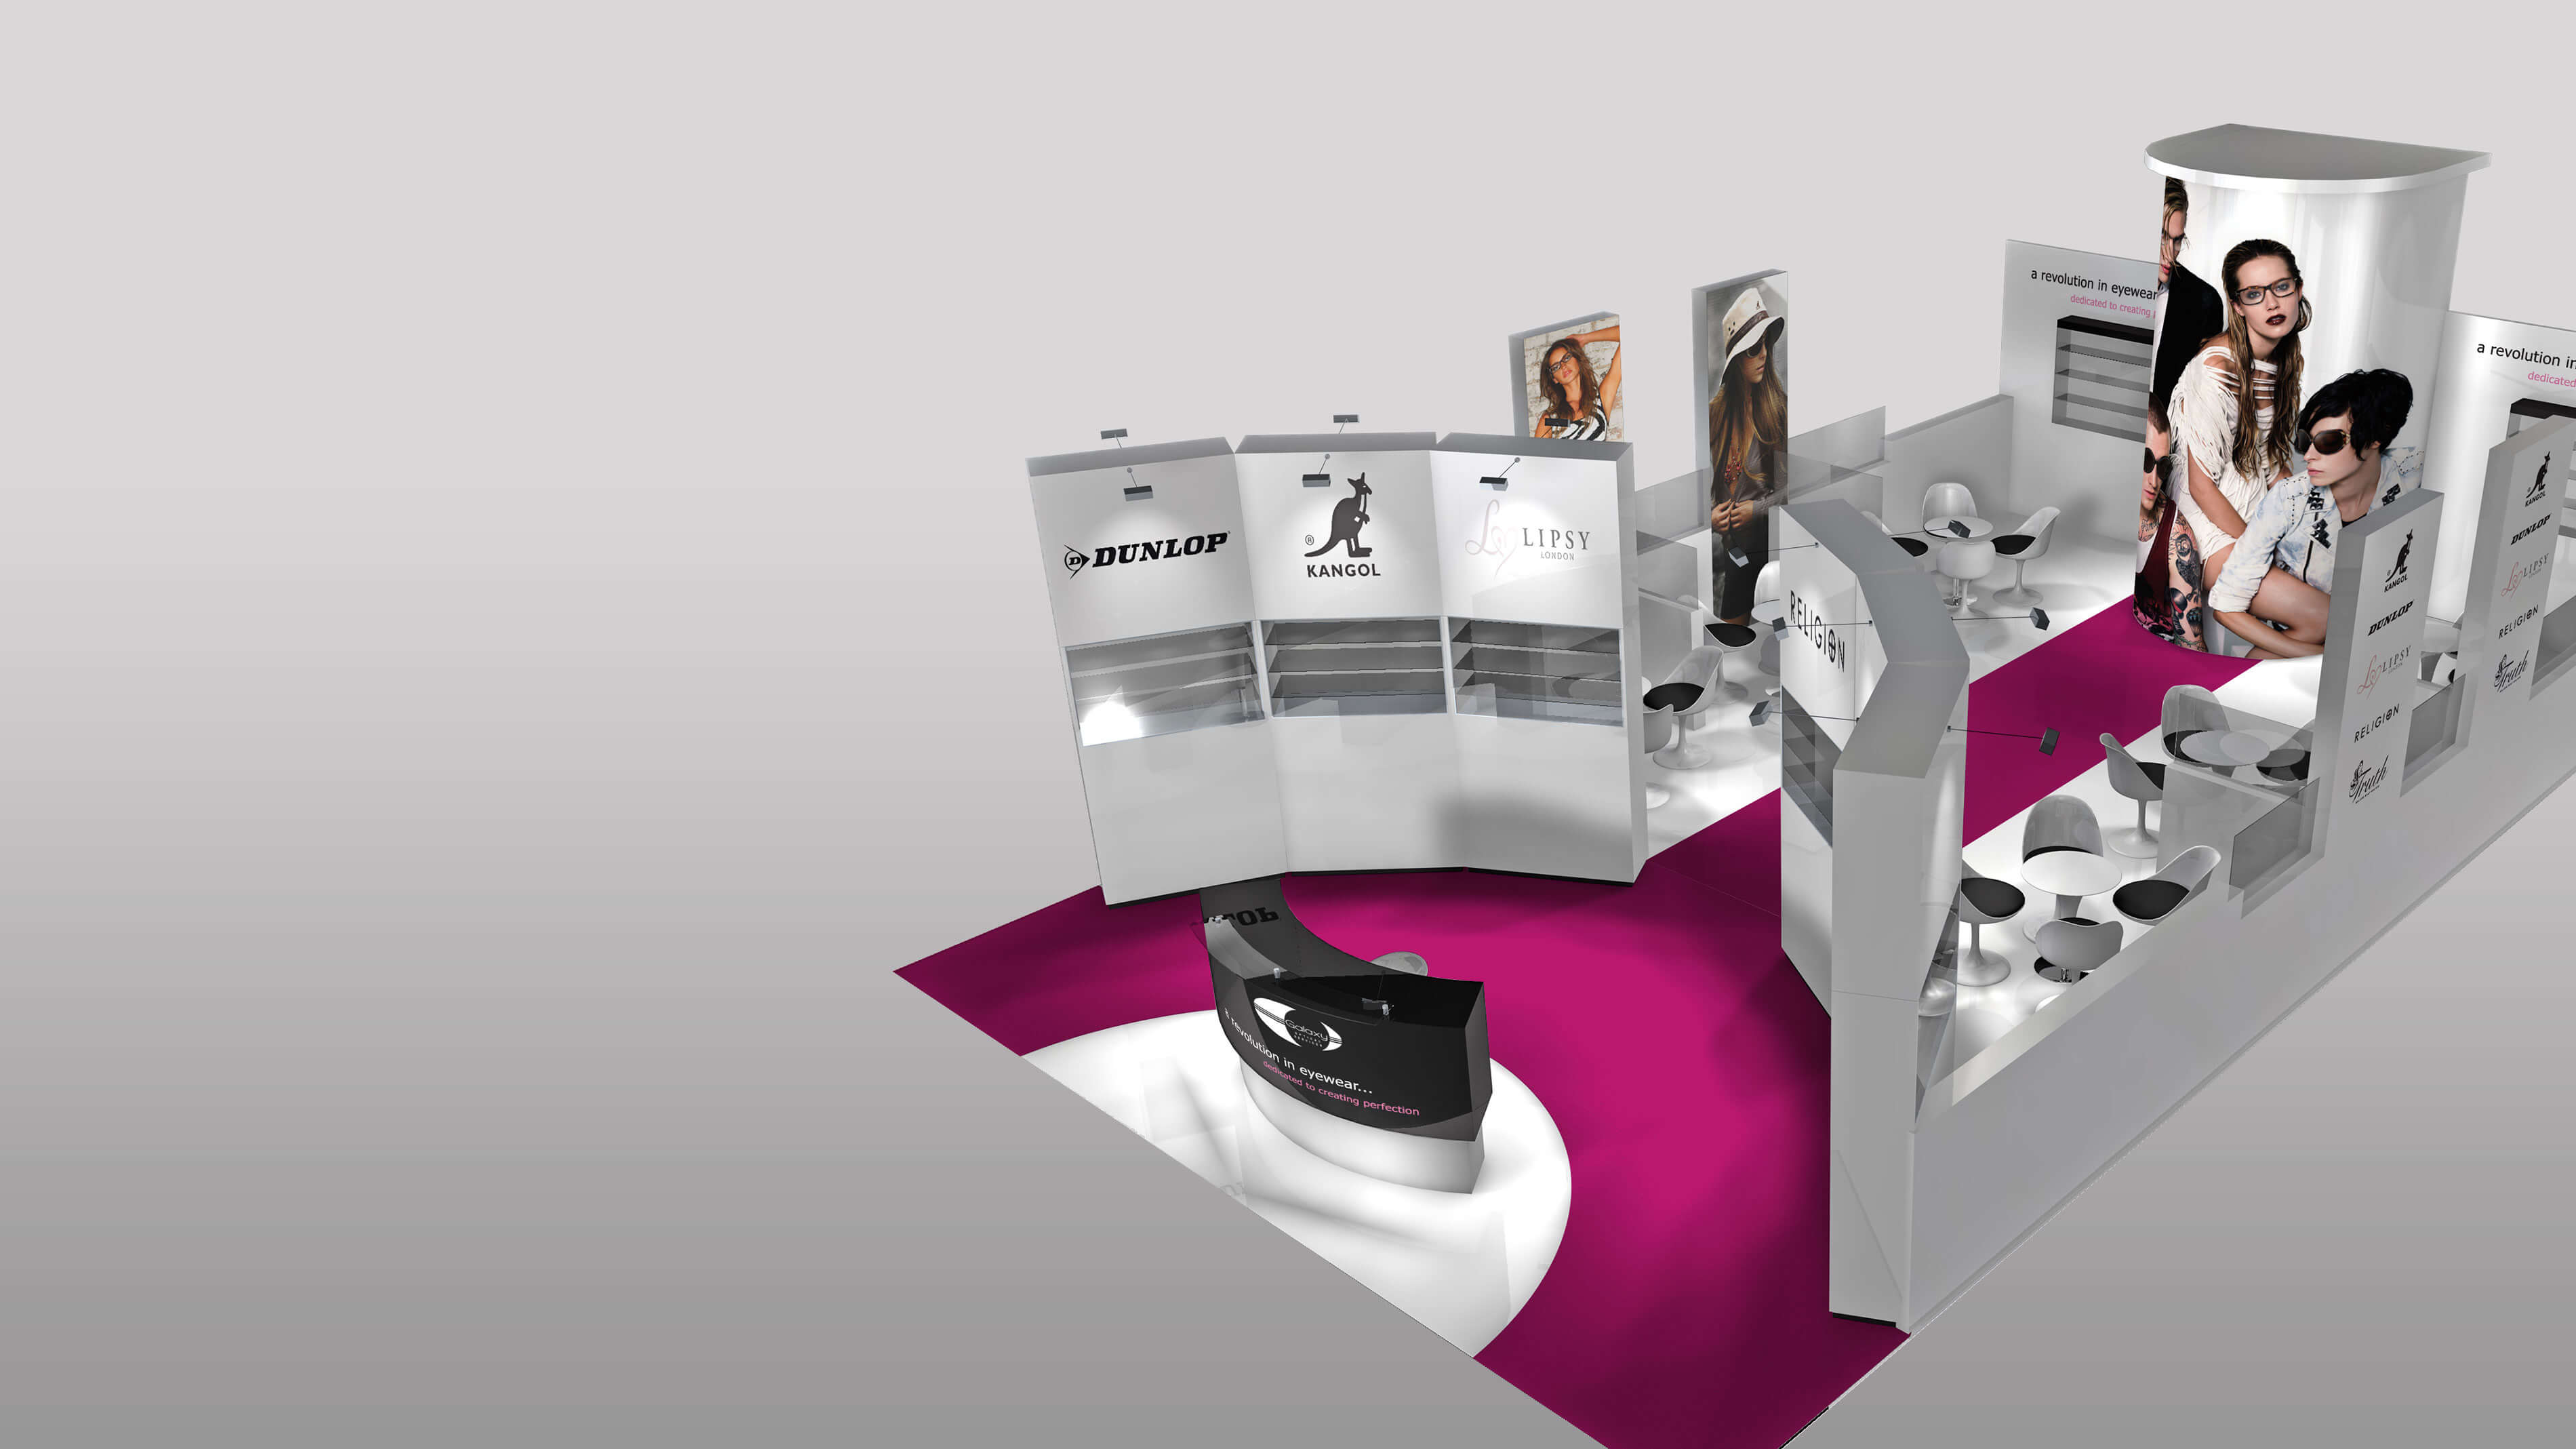 Exhibition stand design to start a revolution